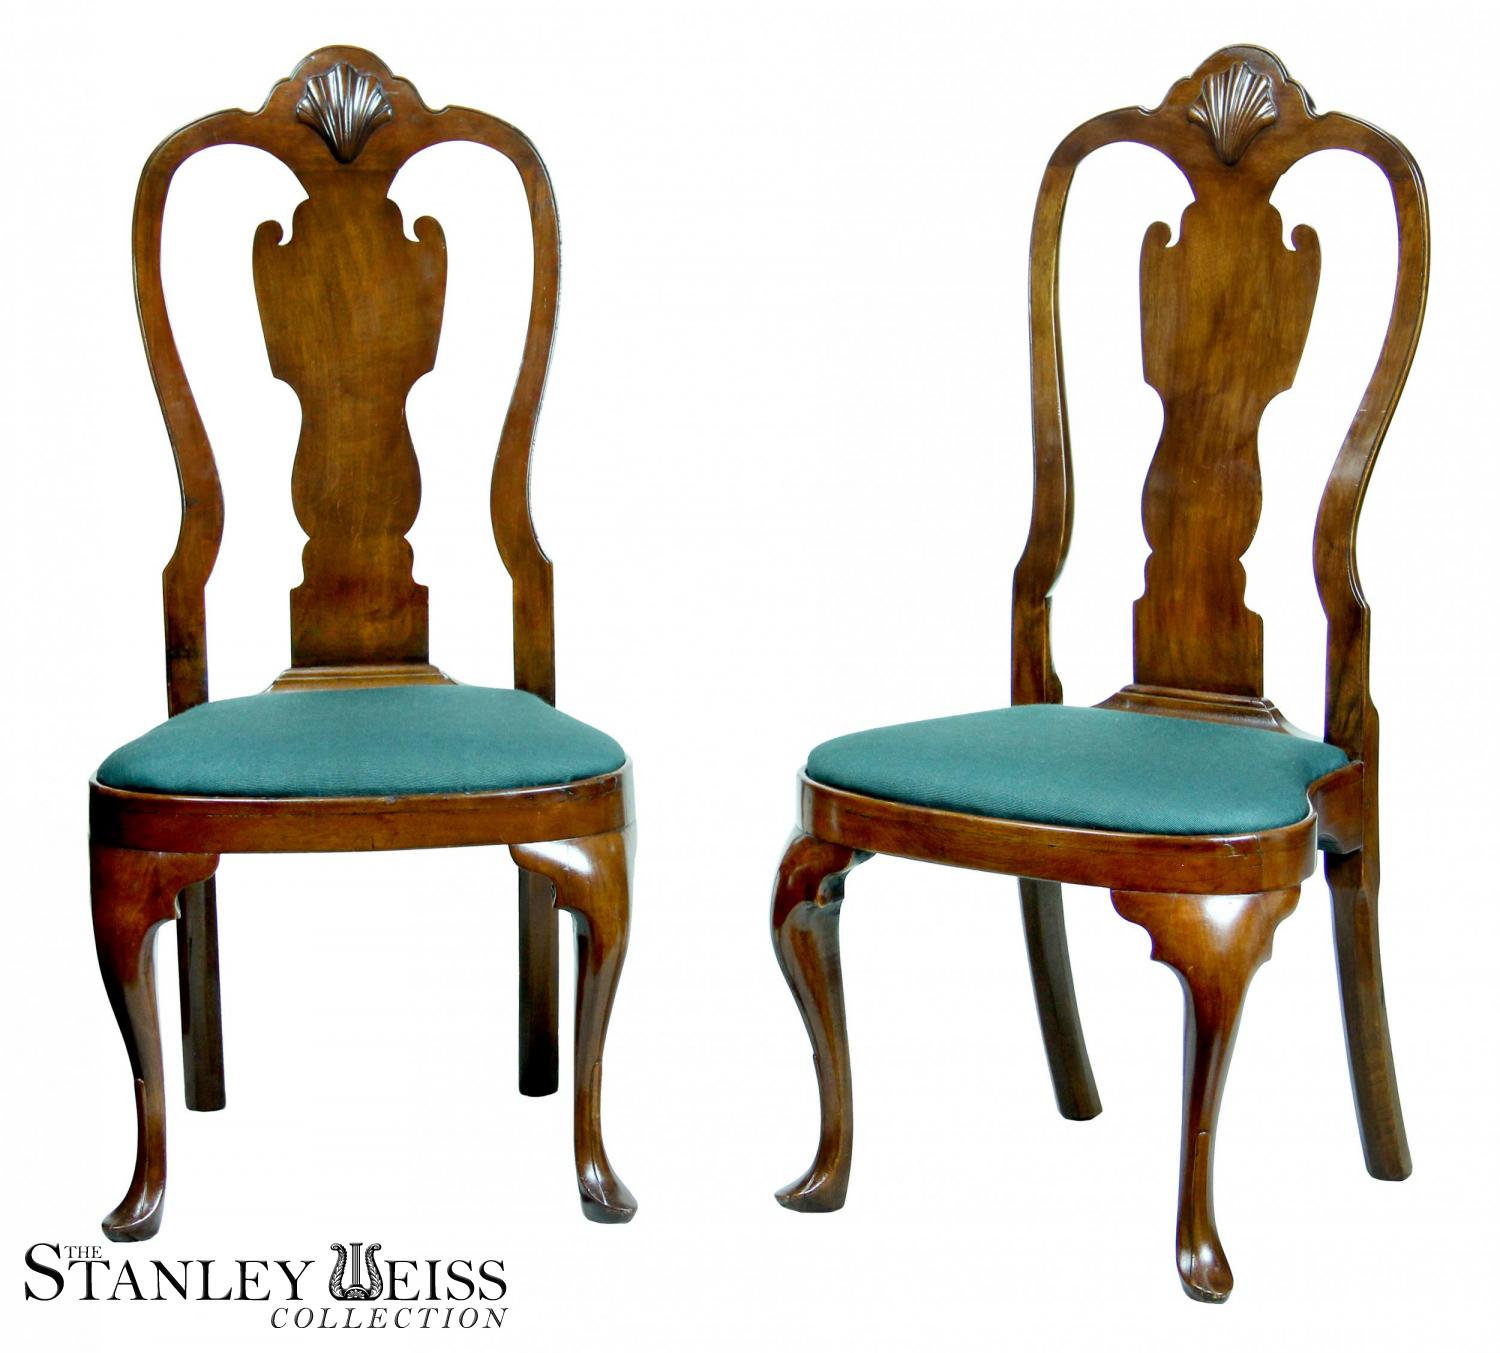 A Beautiful Pair of Walnut Queen Anne Side Chairs with Shell